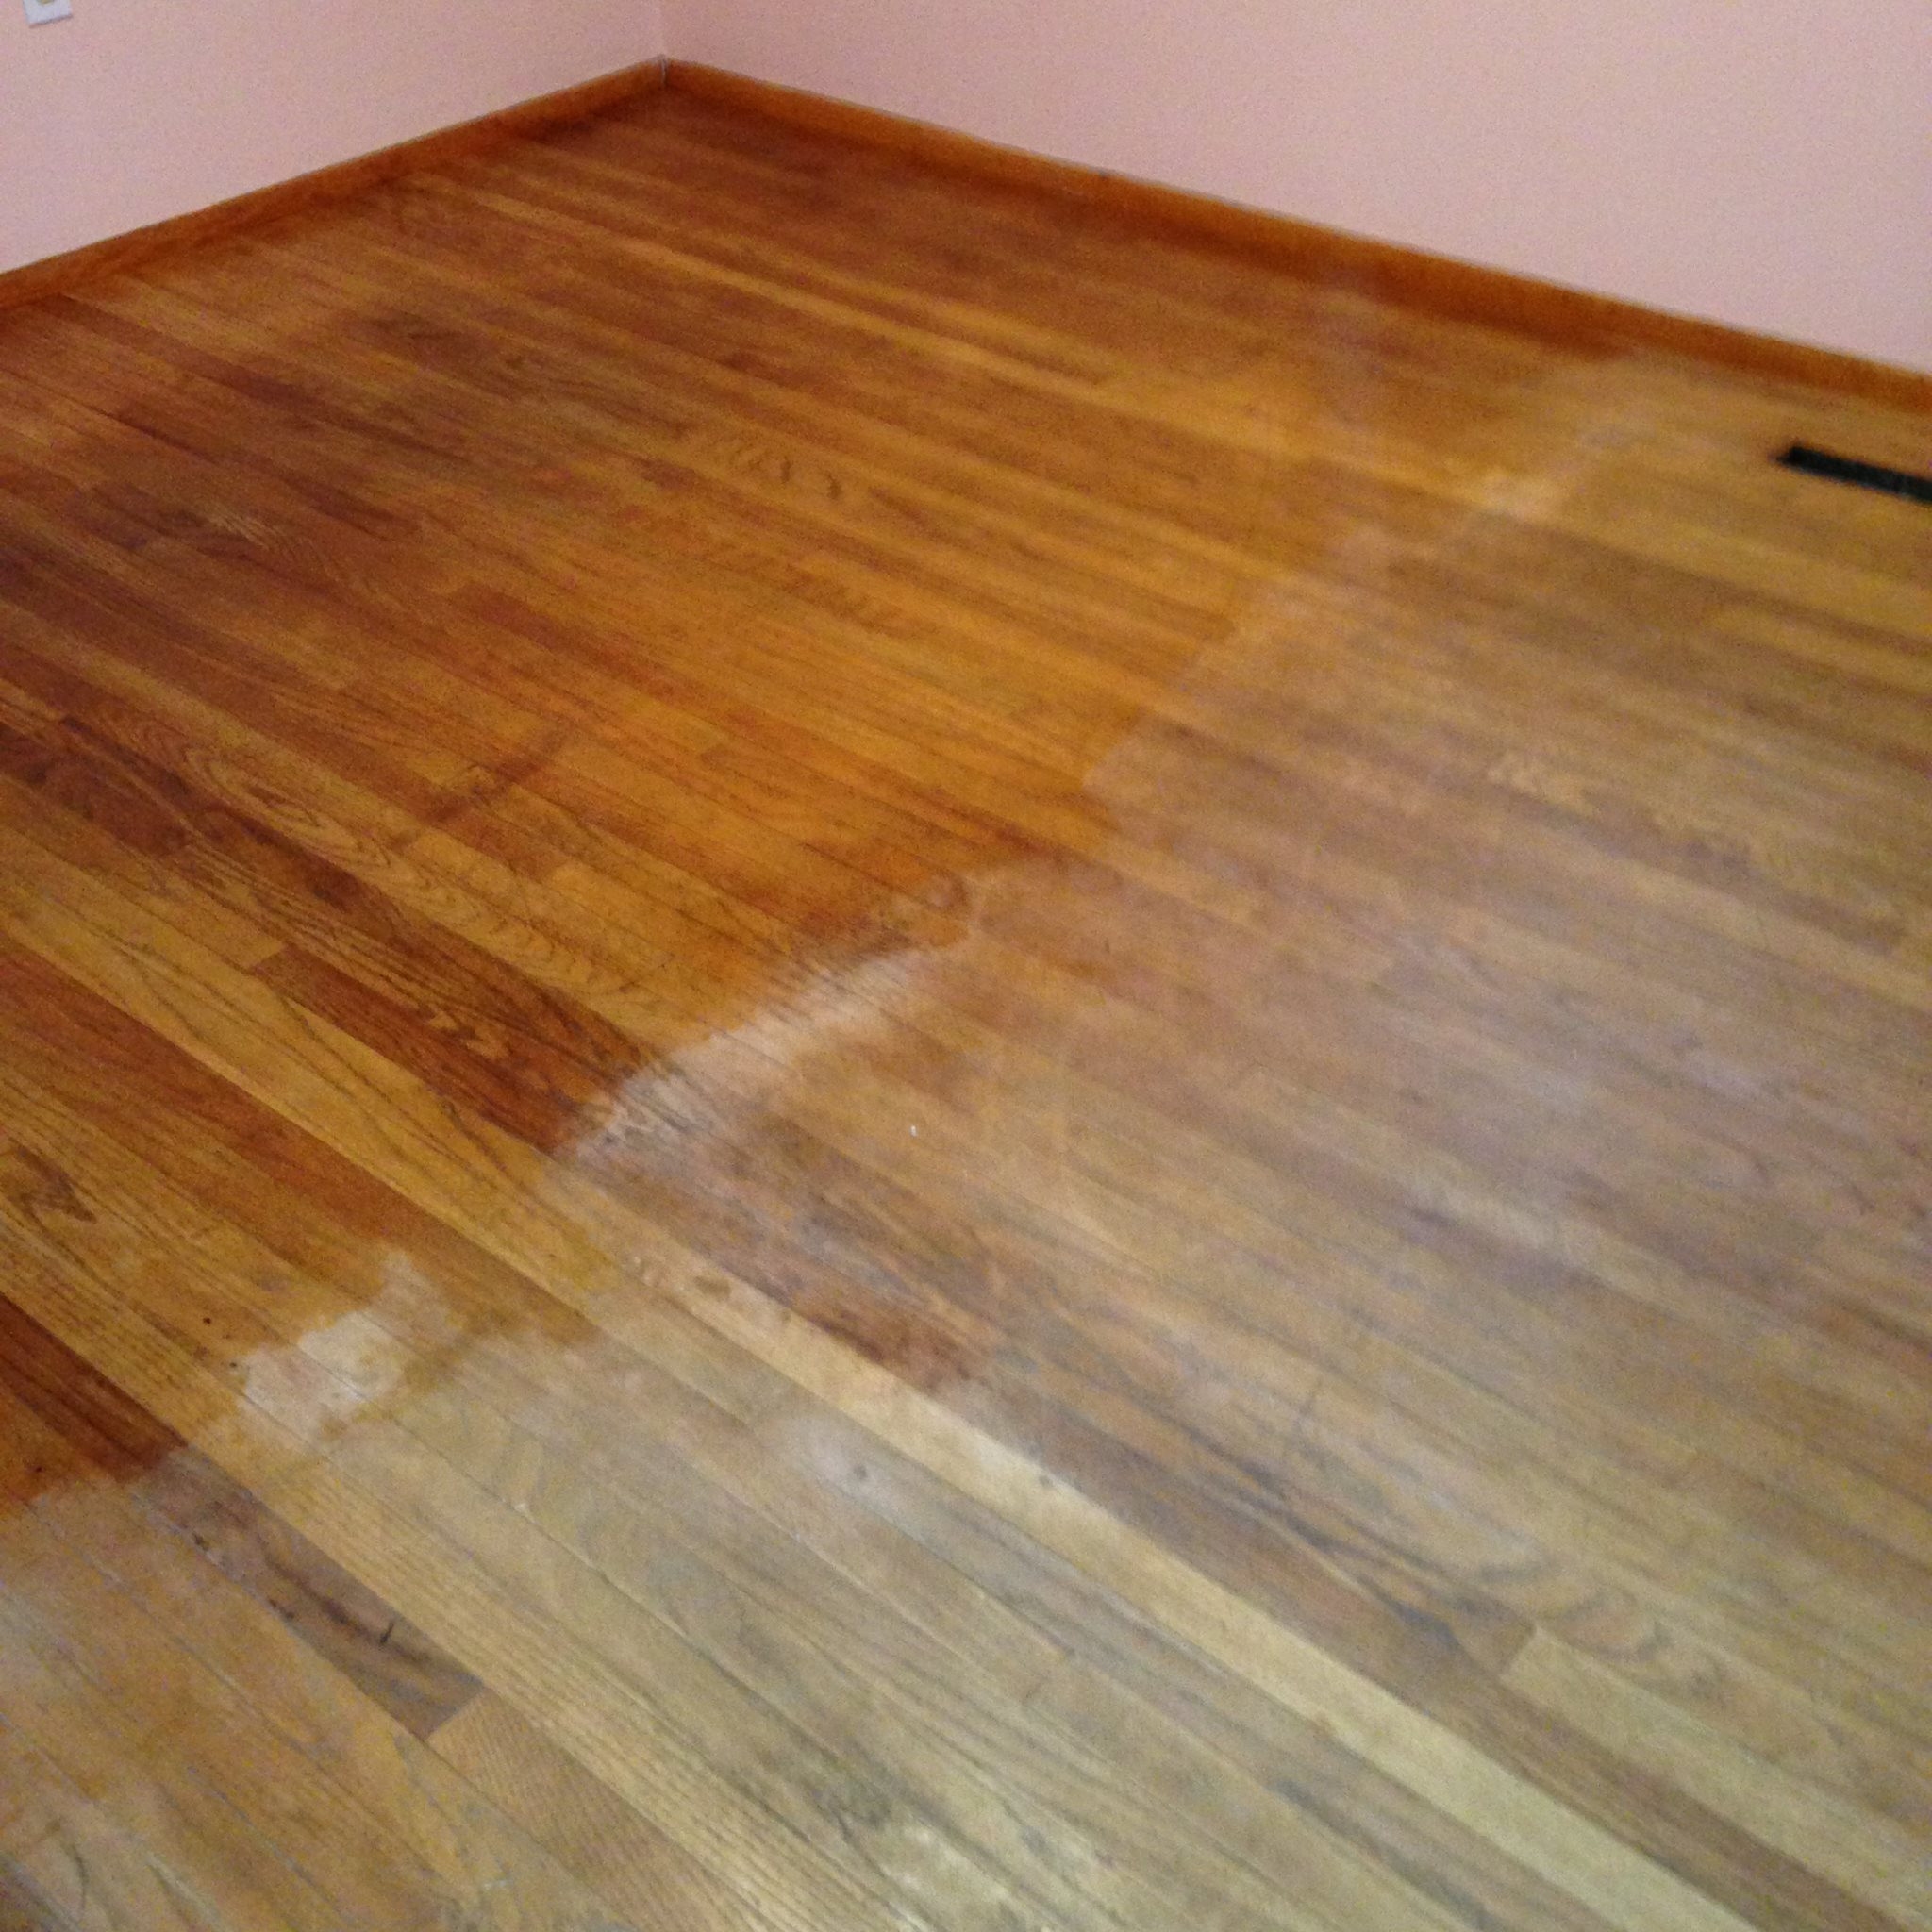 Wood Filler for Hardwood Floor Repair Of 15 Wood Floor Hacks Every Homeowner Needs to Know Inside Wood Floor Hacks 15